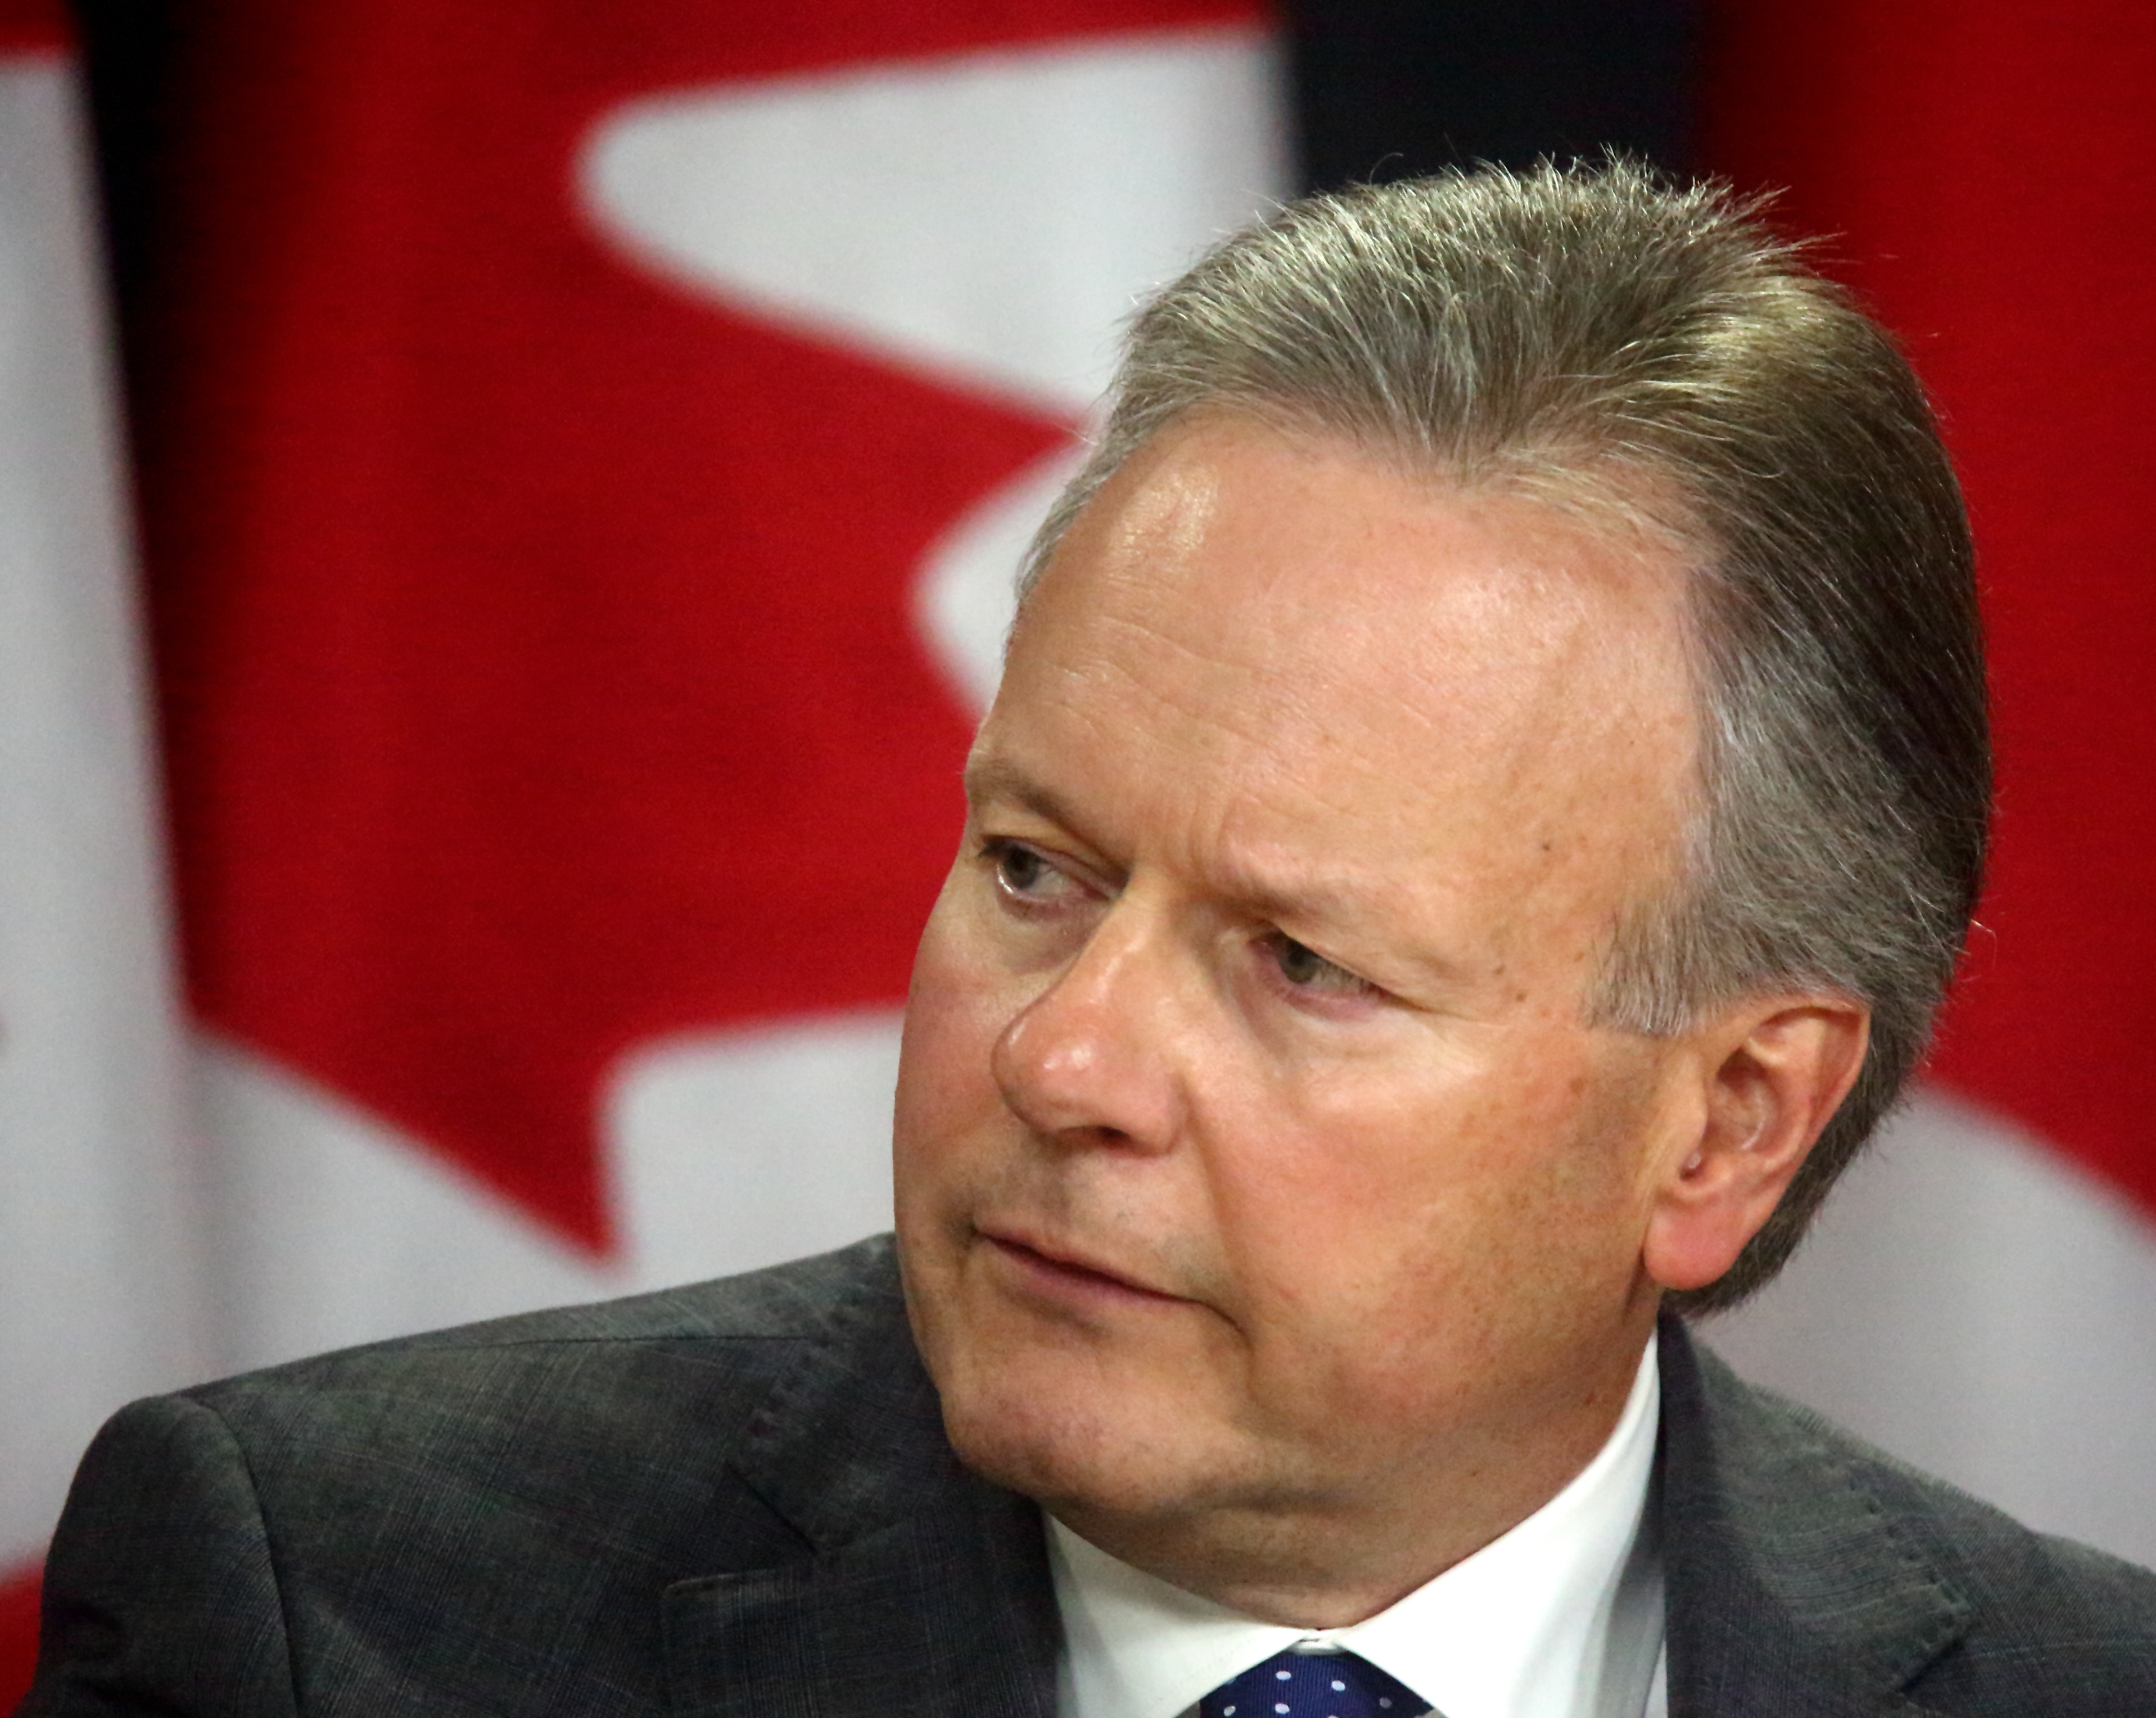 Bank of Canada Governor Stephen Poloz on potential rate cut